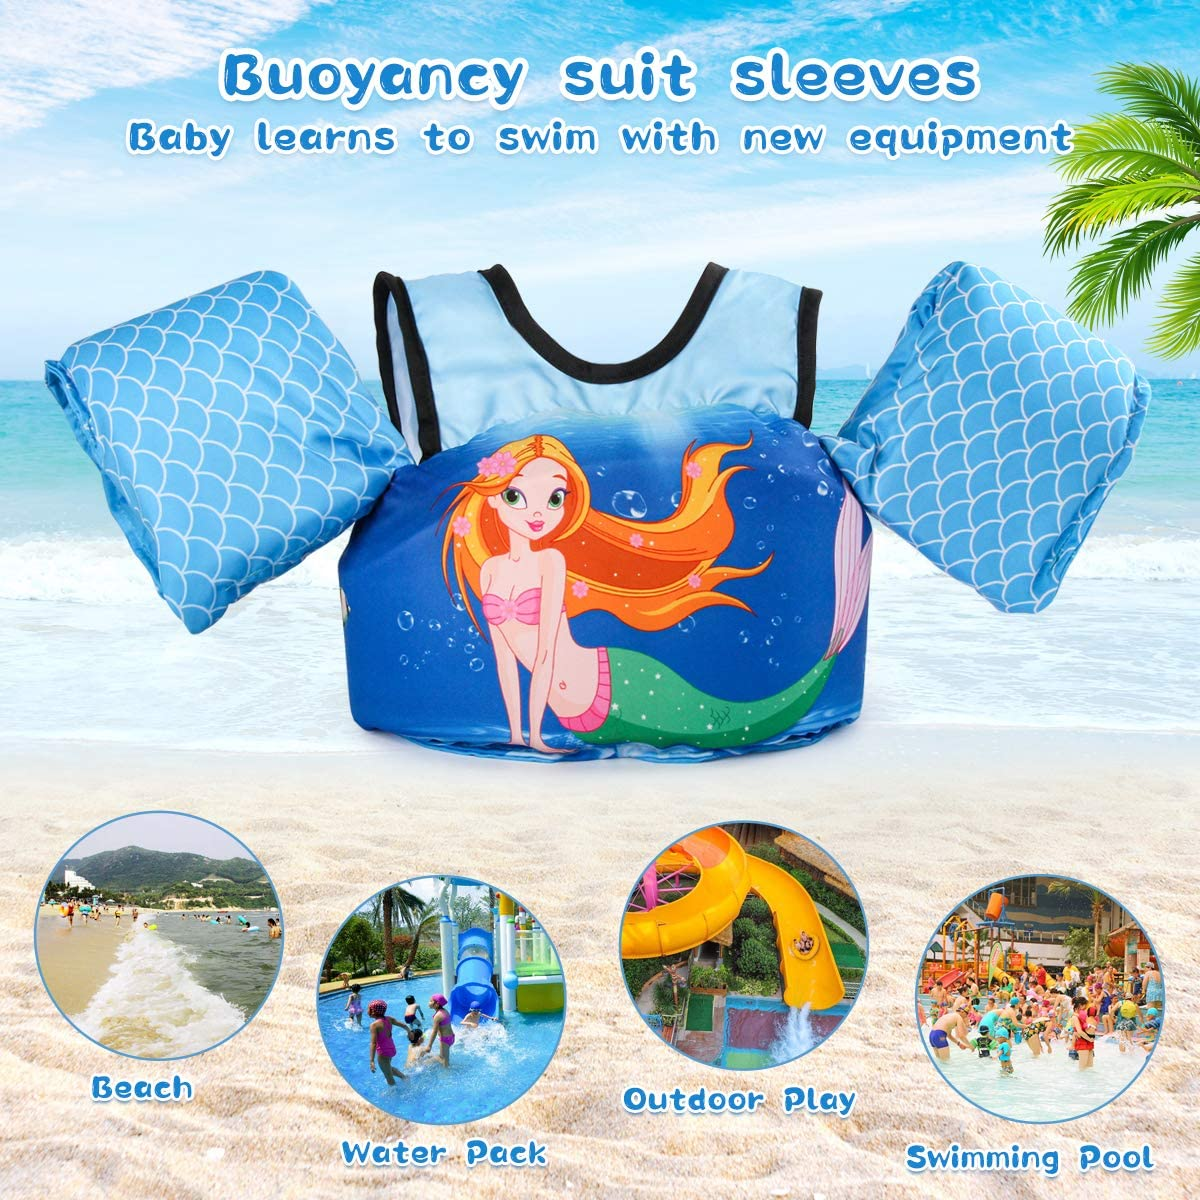 kacai Swim Float Vest for Kids Swim Training Jacket for 2-6 Years Old Boys and Girls14-23KG,Swim Arm Floats Bands Swim Training Aids for Toddler//Child